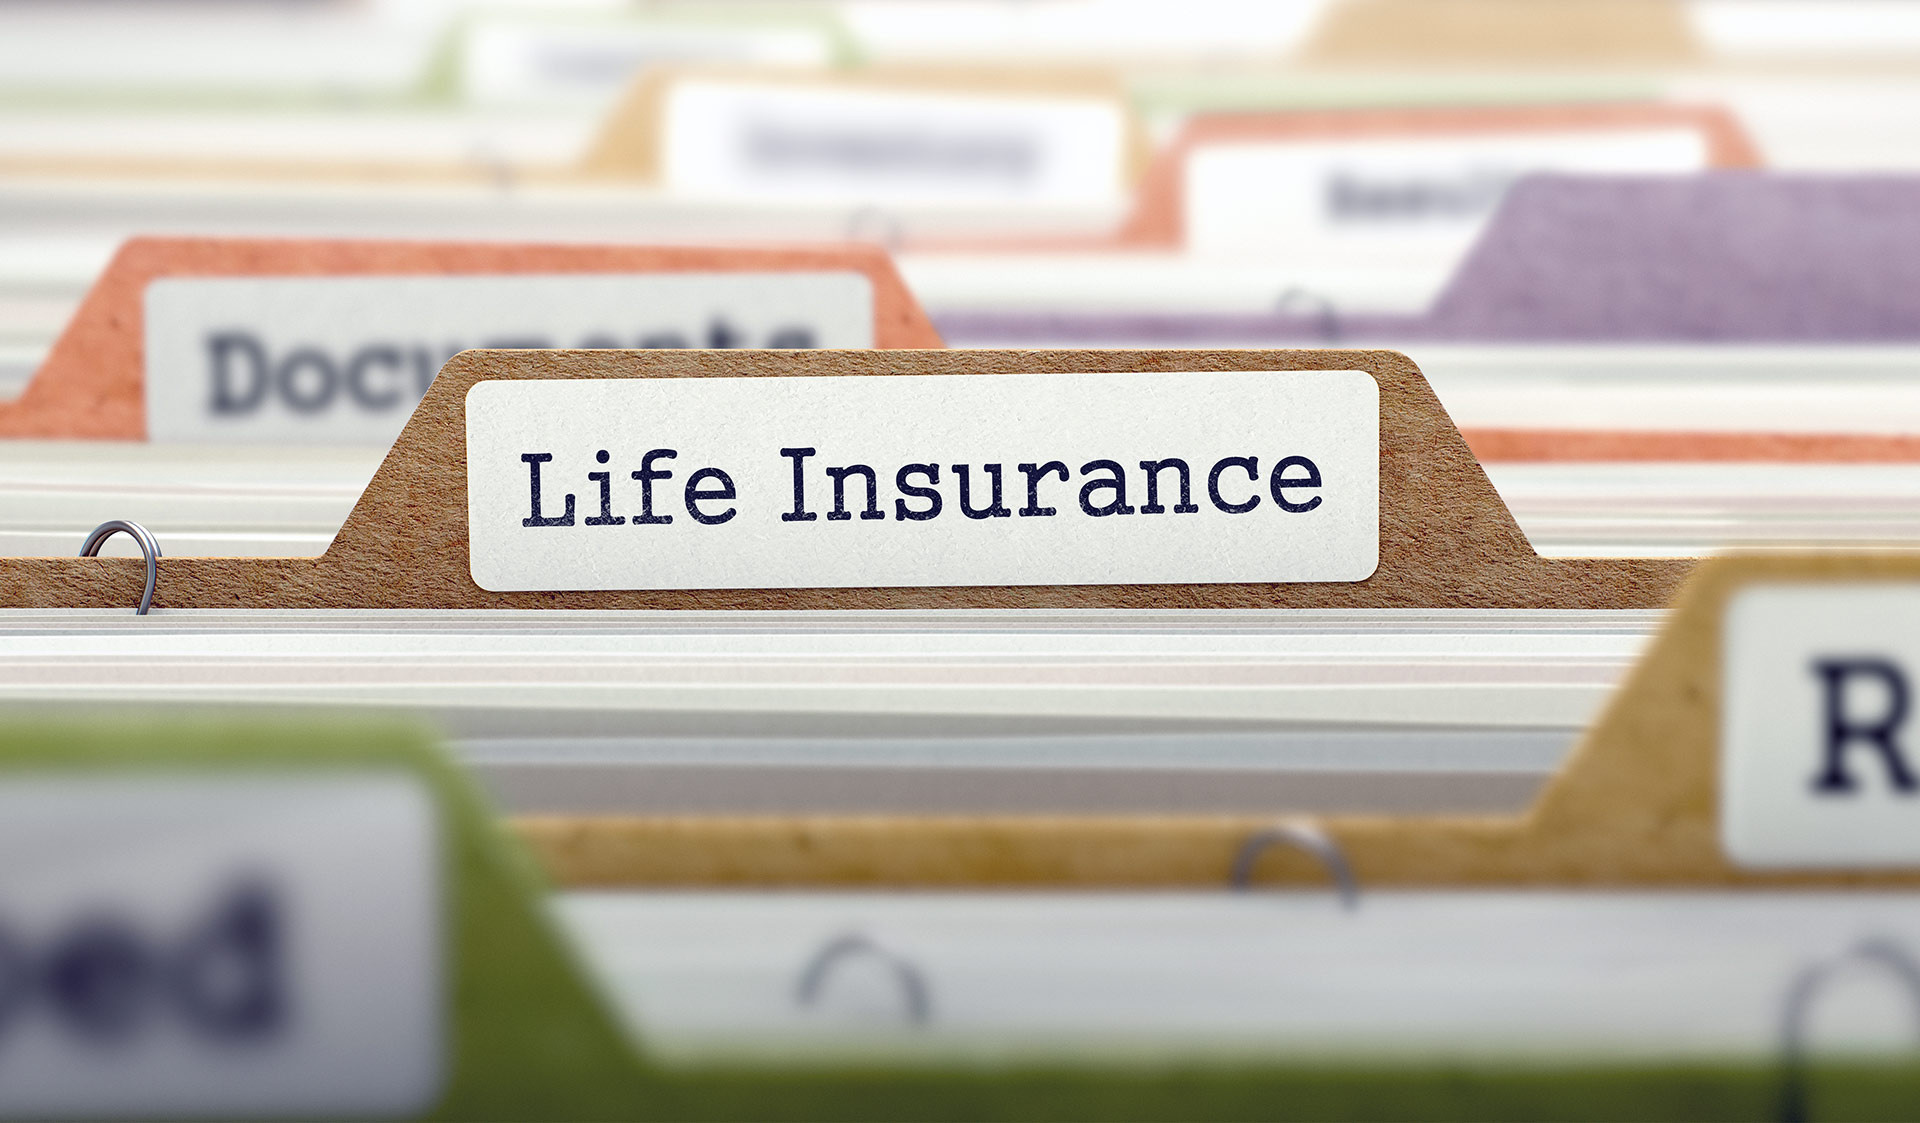 Life Insurance file in file drawer